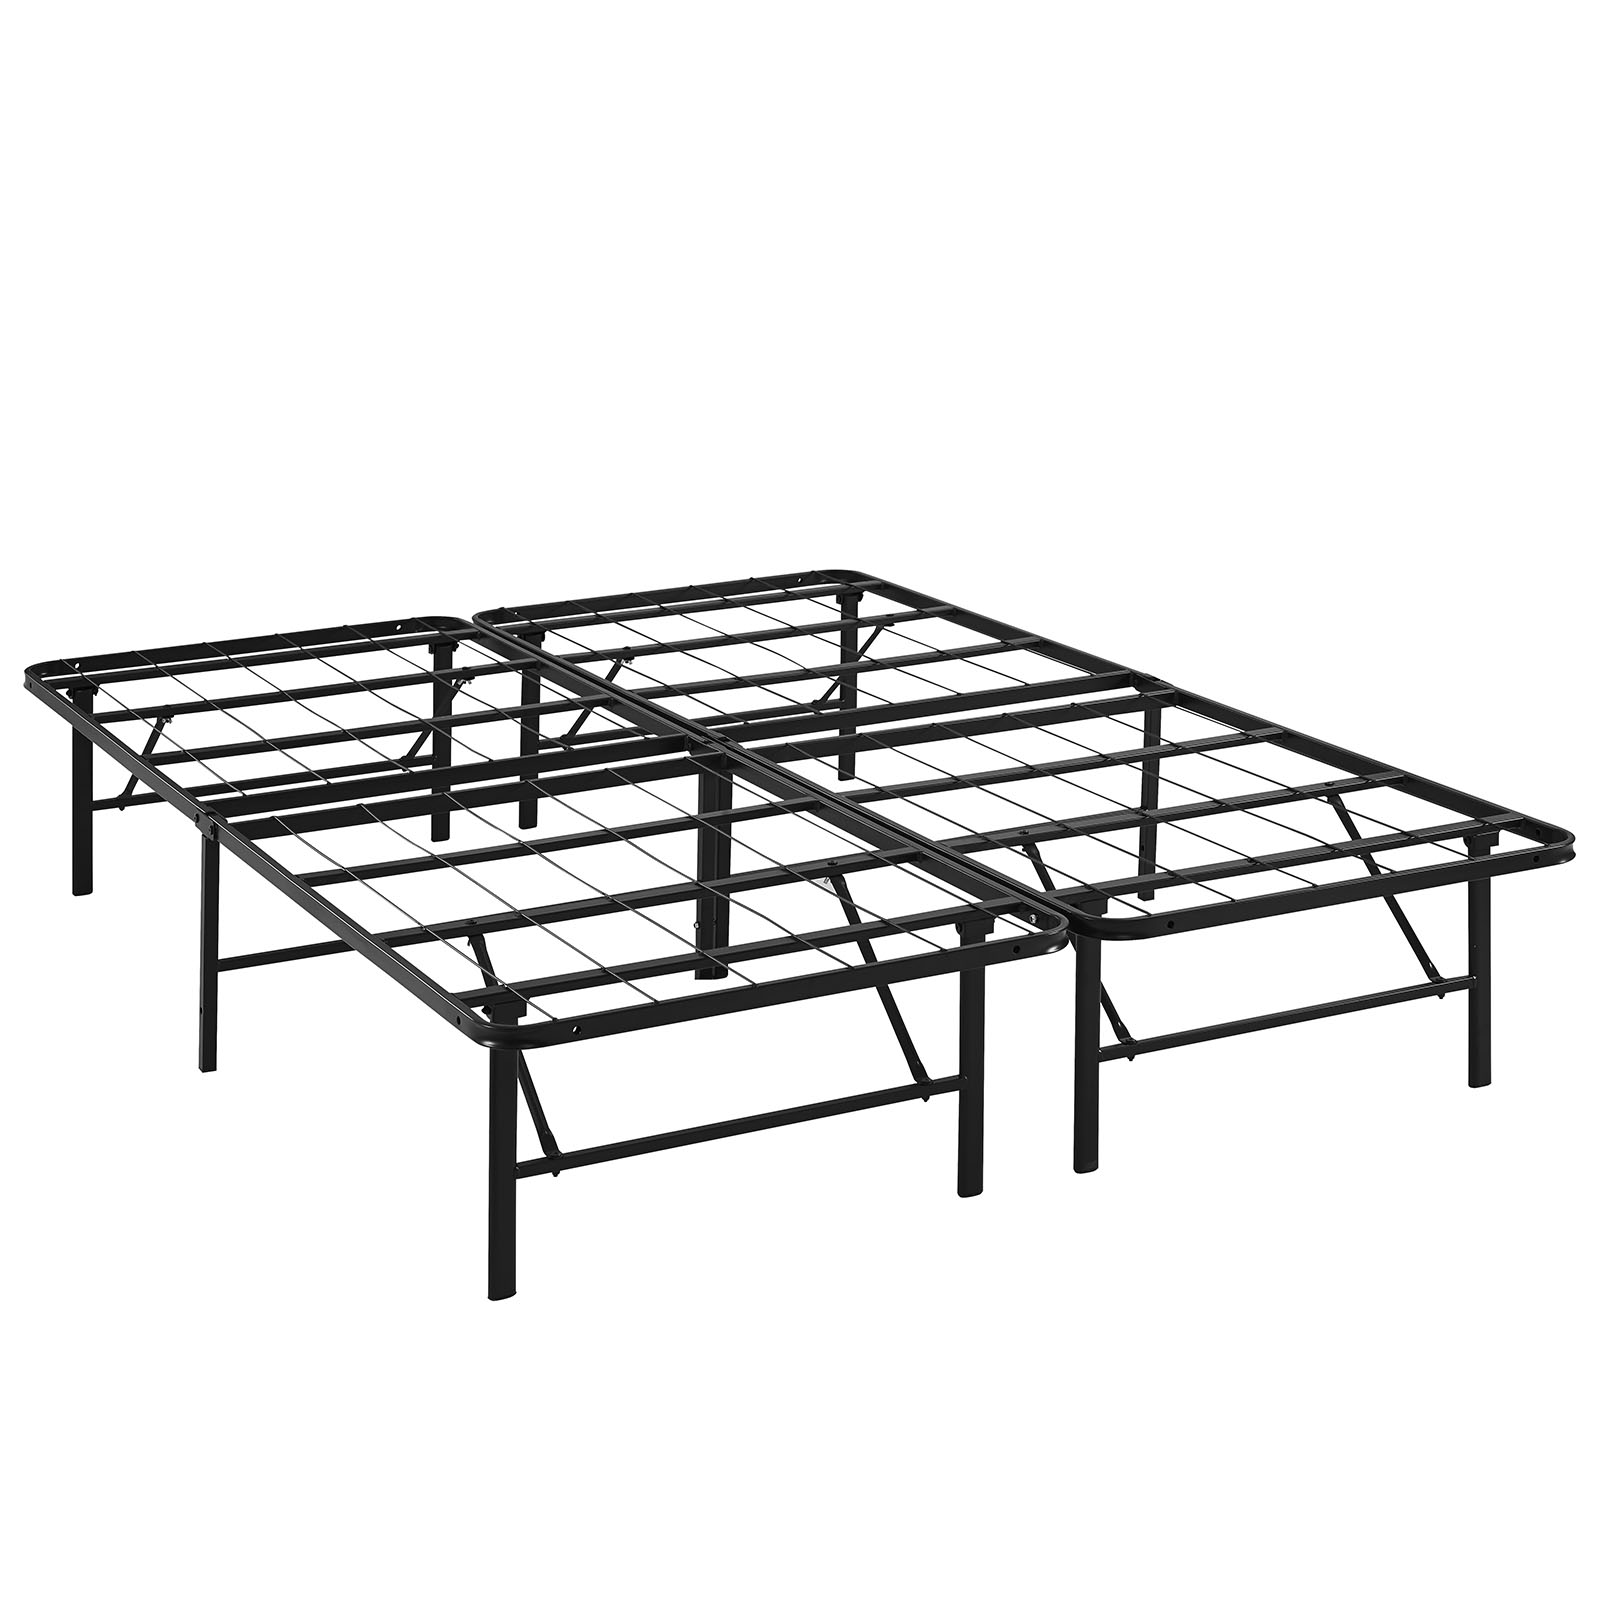 Modern Contemporary Urban Design Bedroom Queen Size Platform Bed Frame, Brown, Metal Steel